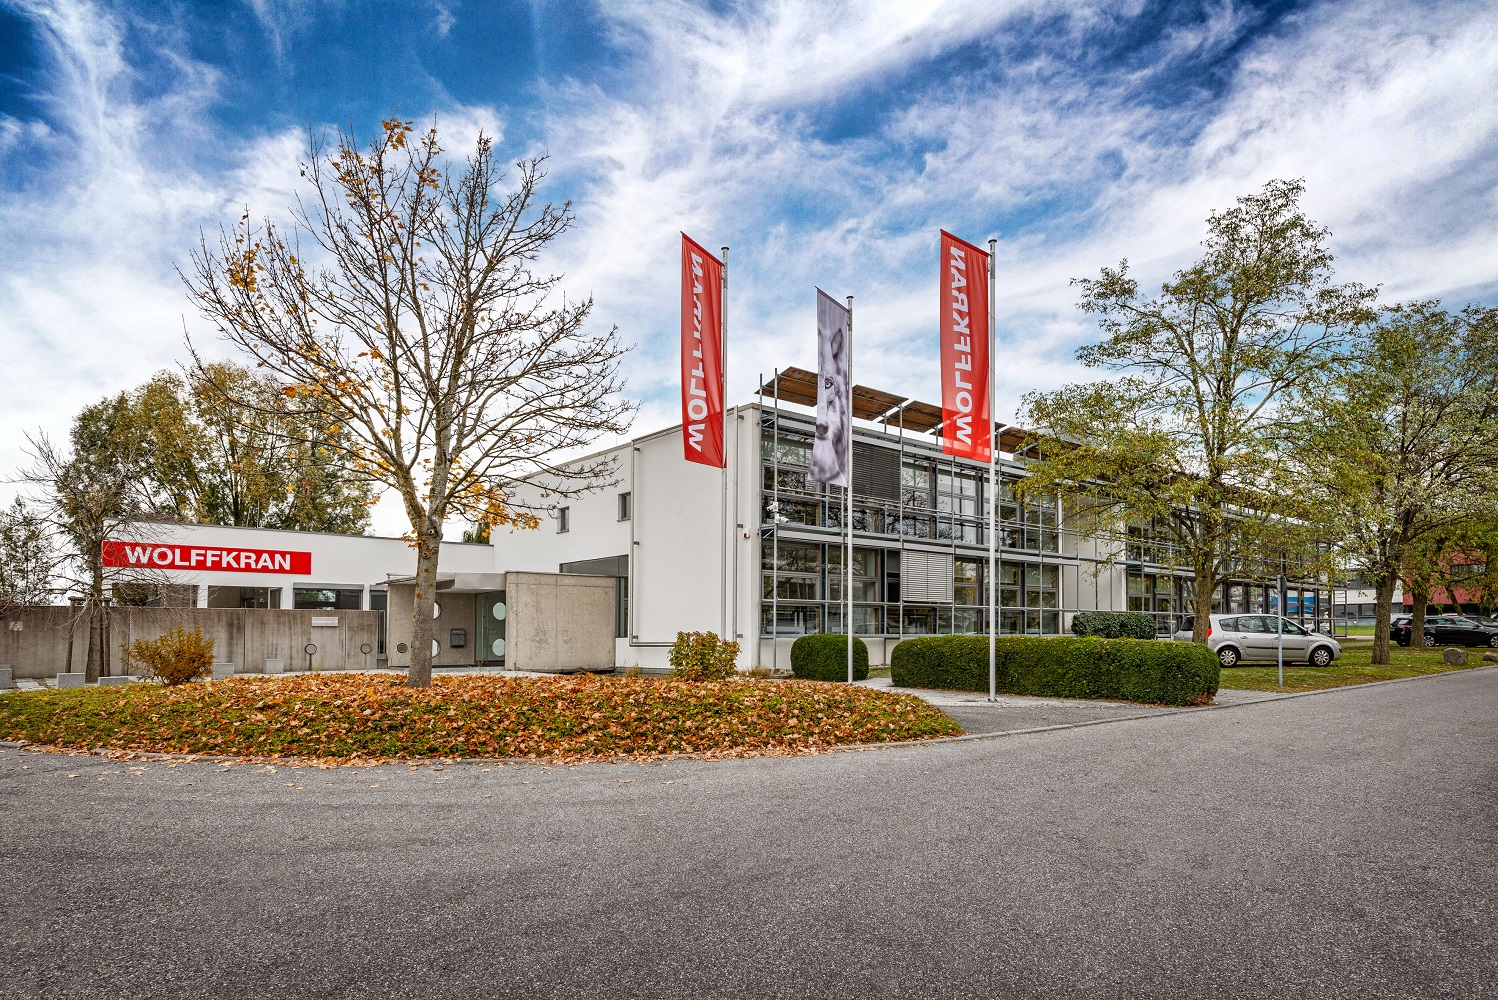 WOLFFKRAN's R&D Center in Ilsfeld, near Heilbronn. WOLFFKRAN employs a total of 377 staff members at the three sites, all of whom will receive extensive training on the integration of climate protection in their everyday work this year.